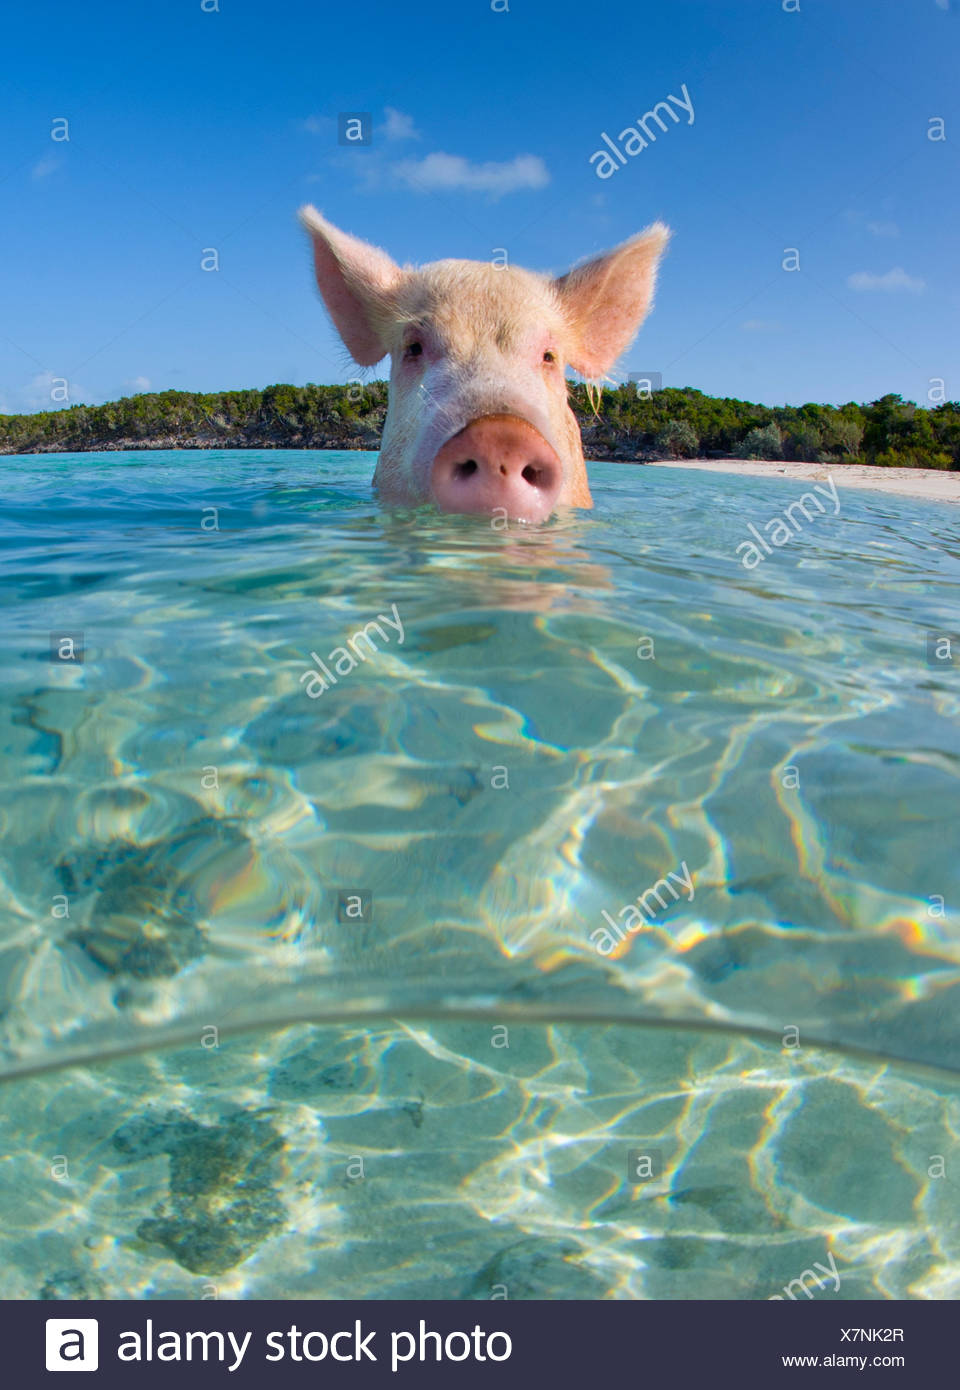 A domestic pig (Sus scrofa domestica) swimming in the sea. Exuma Cays, Bahamas. Tropical West Atlantic Ocean. This family of pigs live on this beach in the Bahamas and enjoy swimming in the sea. - Stock Image